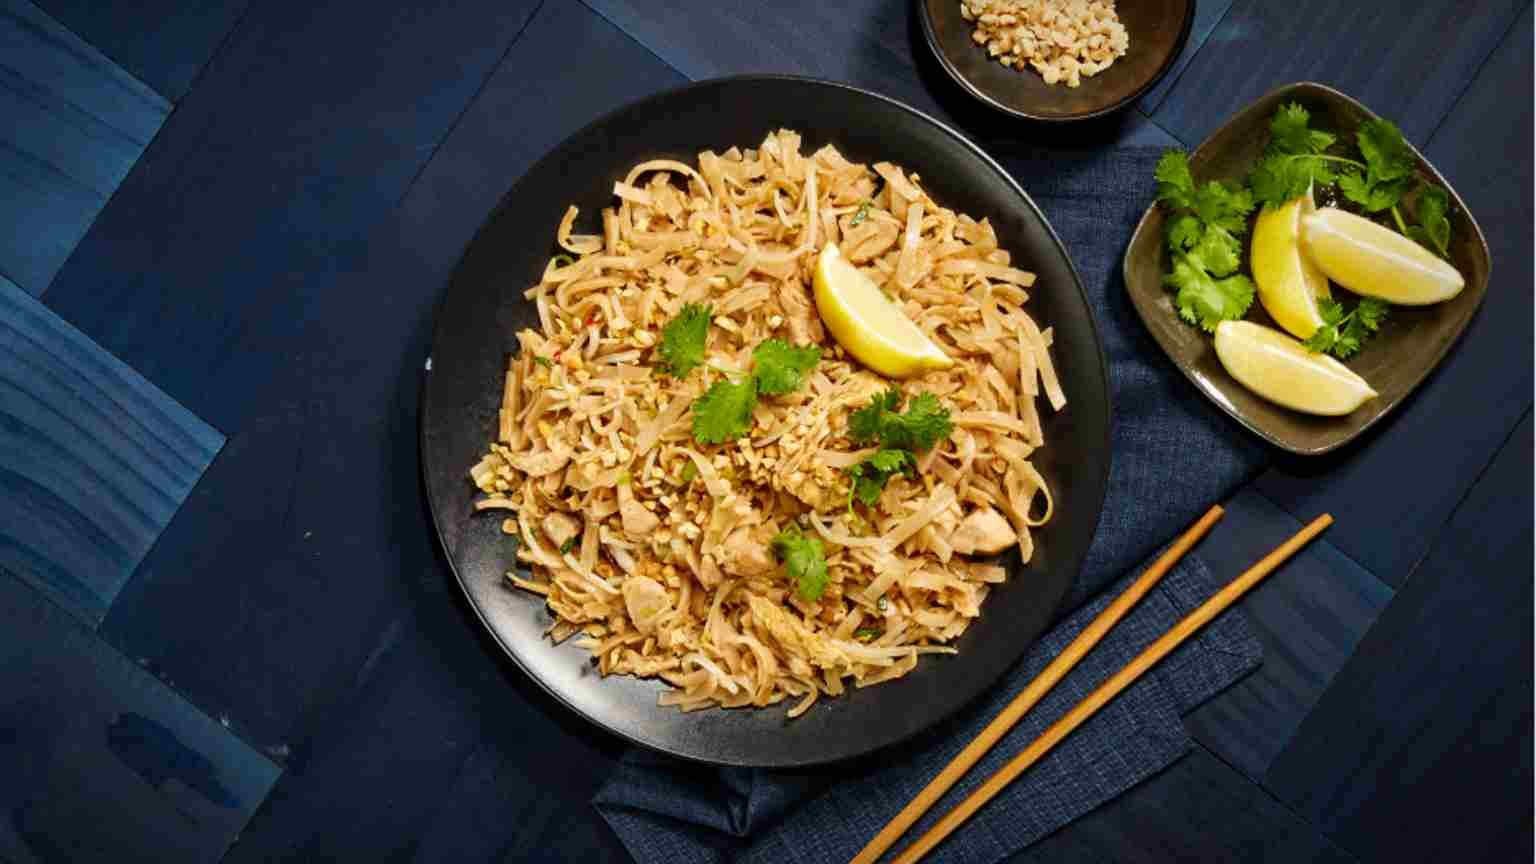 A plate of noodles with chopsticks on a table.